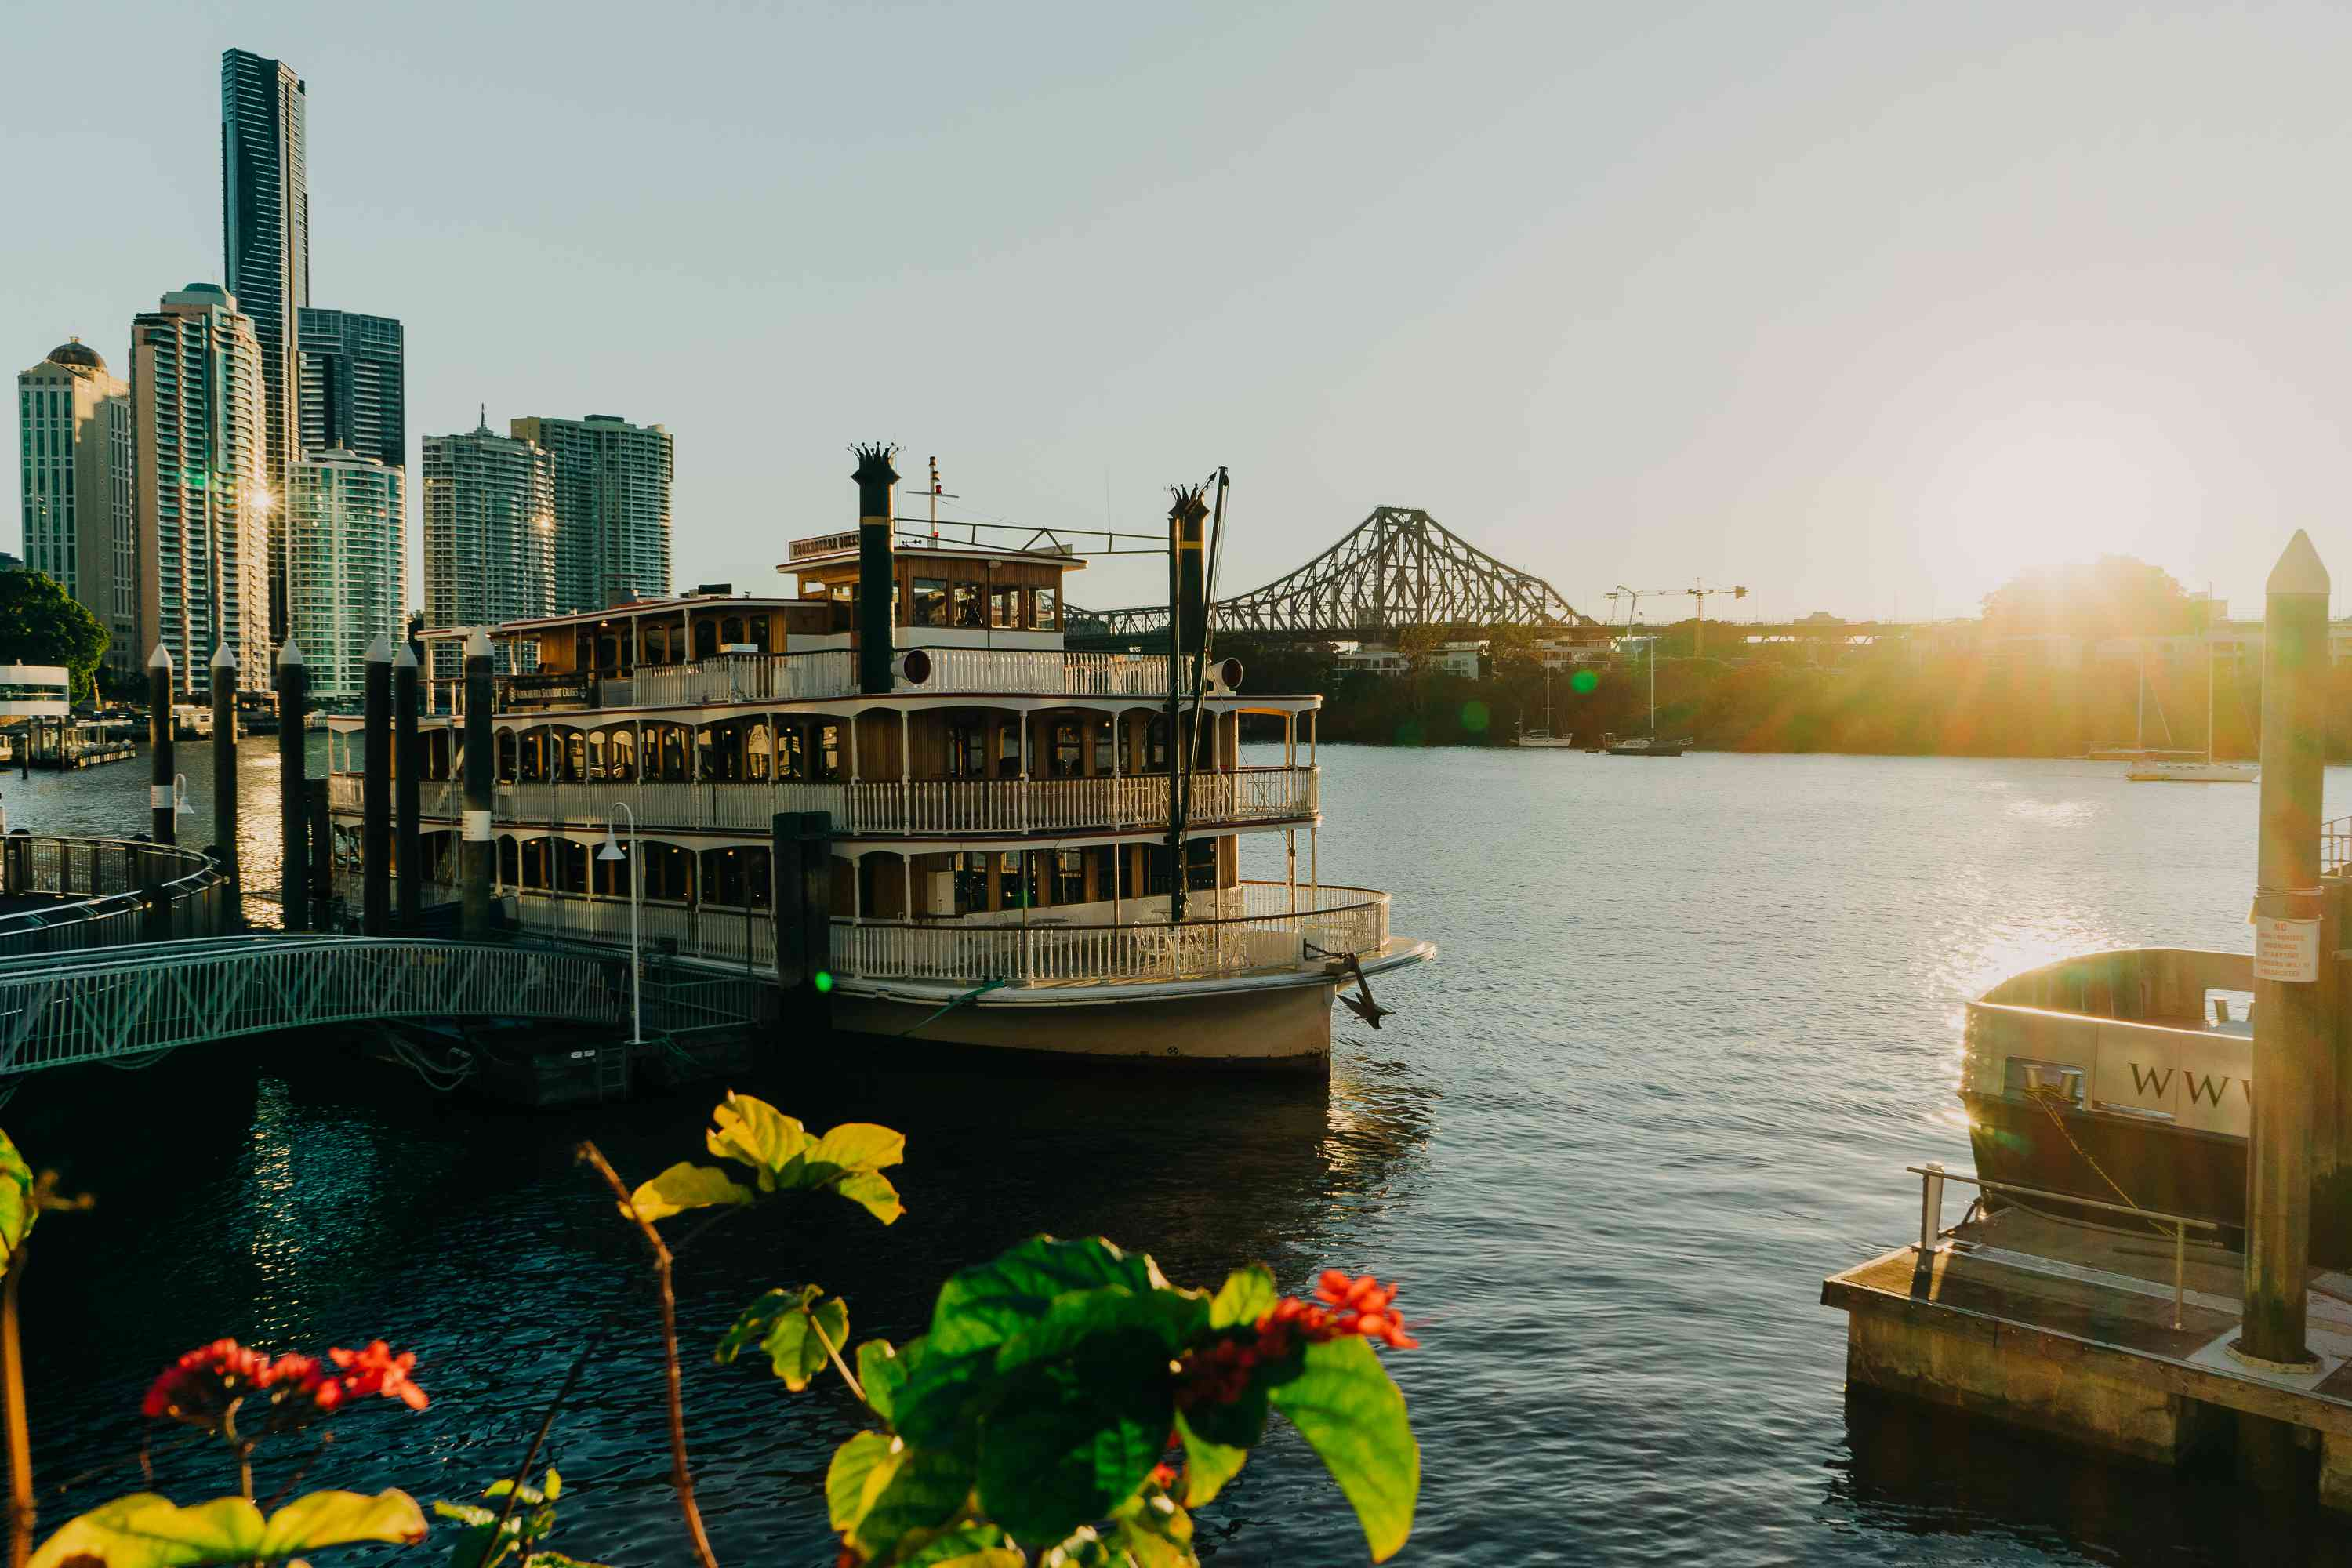 A boat on the Brisbane river